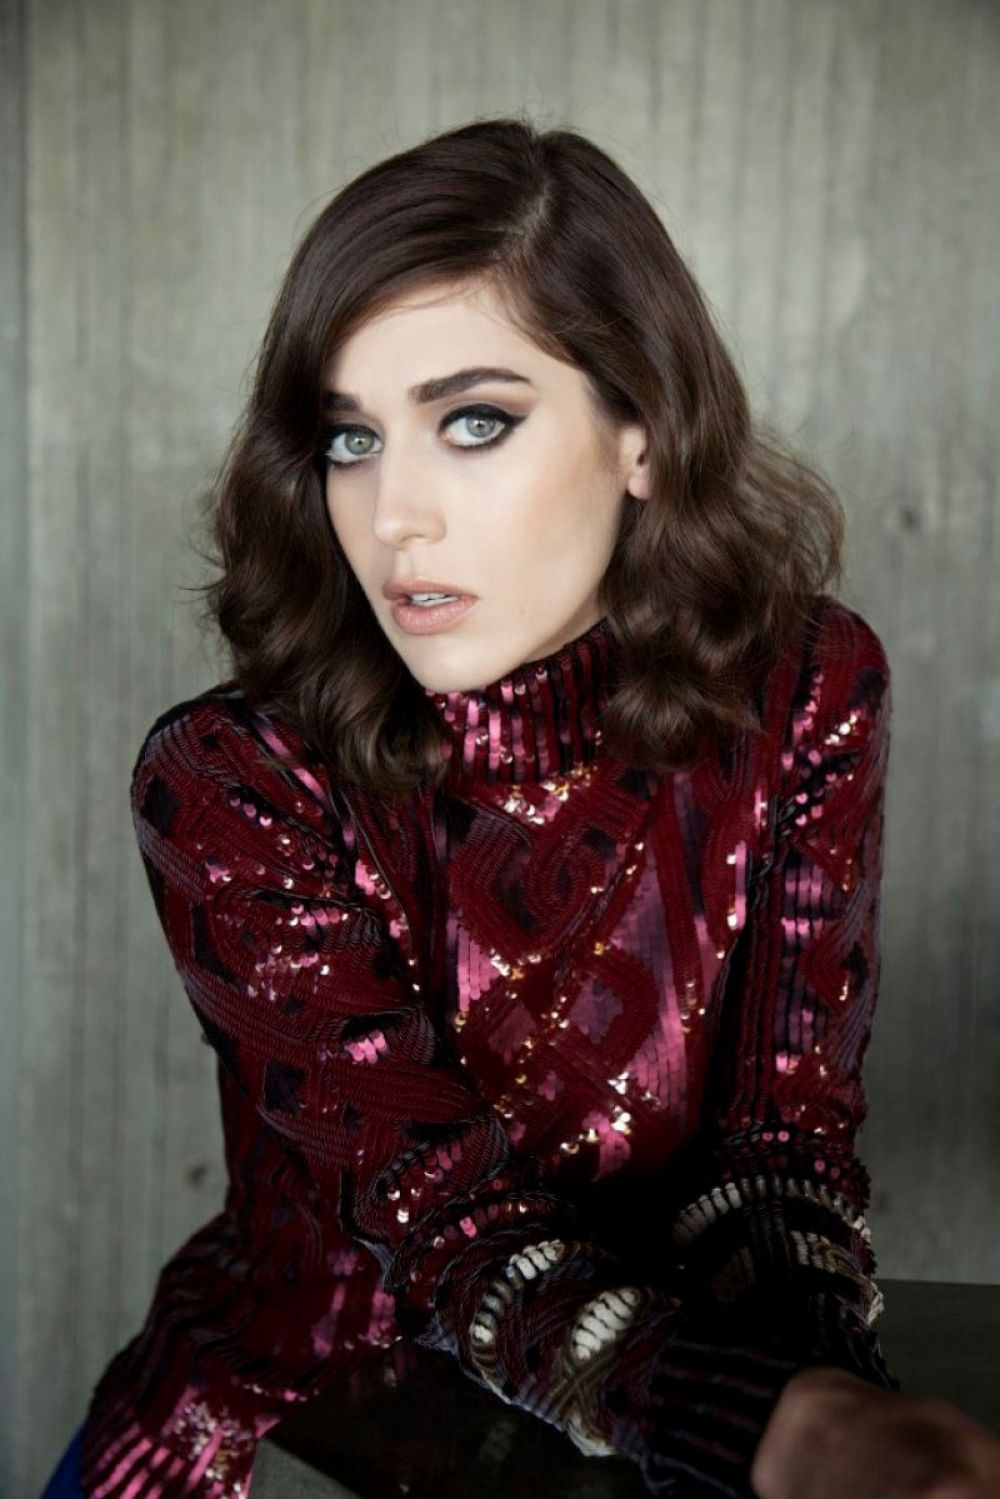 LIZZY CAPLAN in The Untitled Magazine, September 2015 Issue